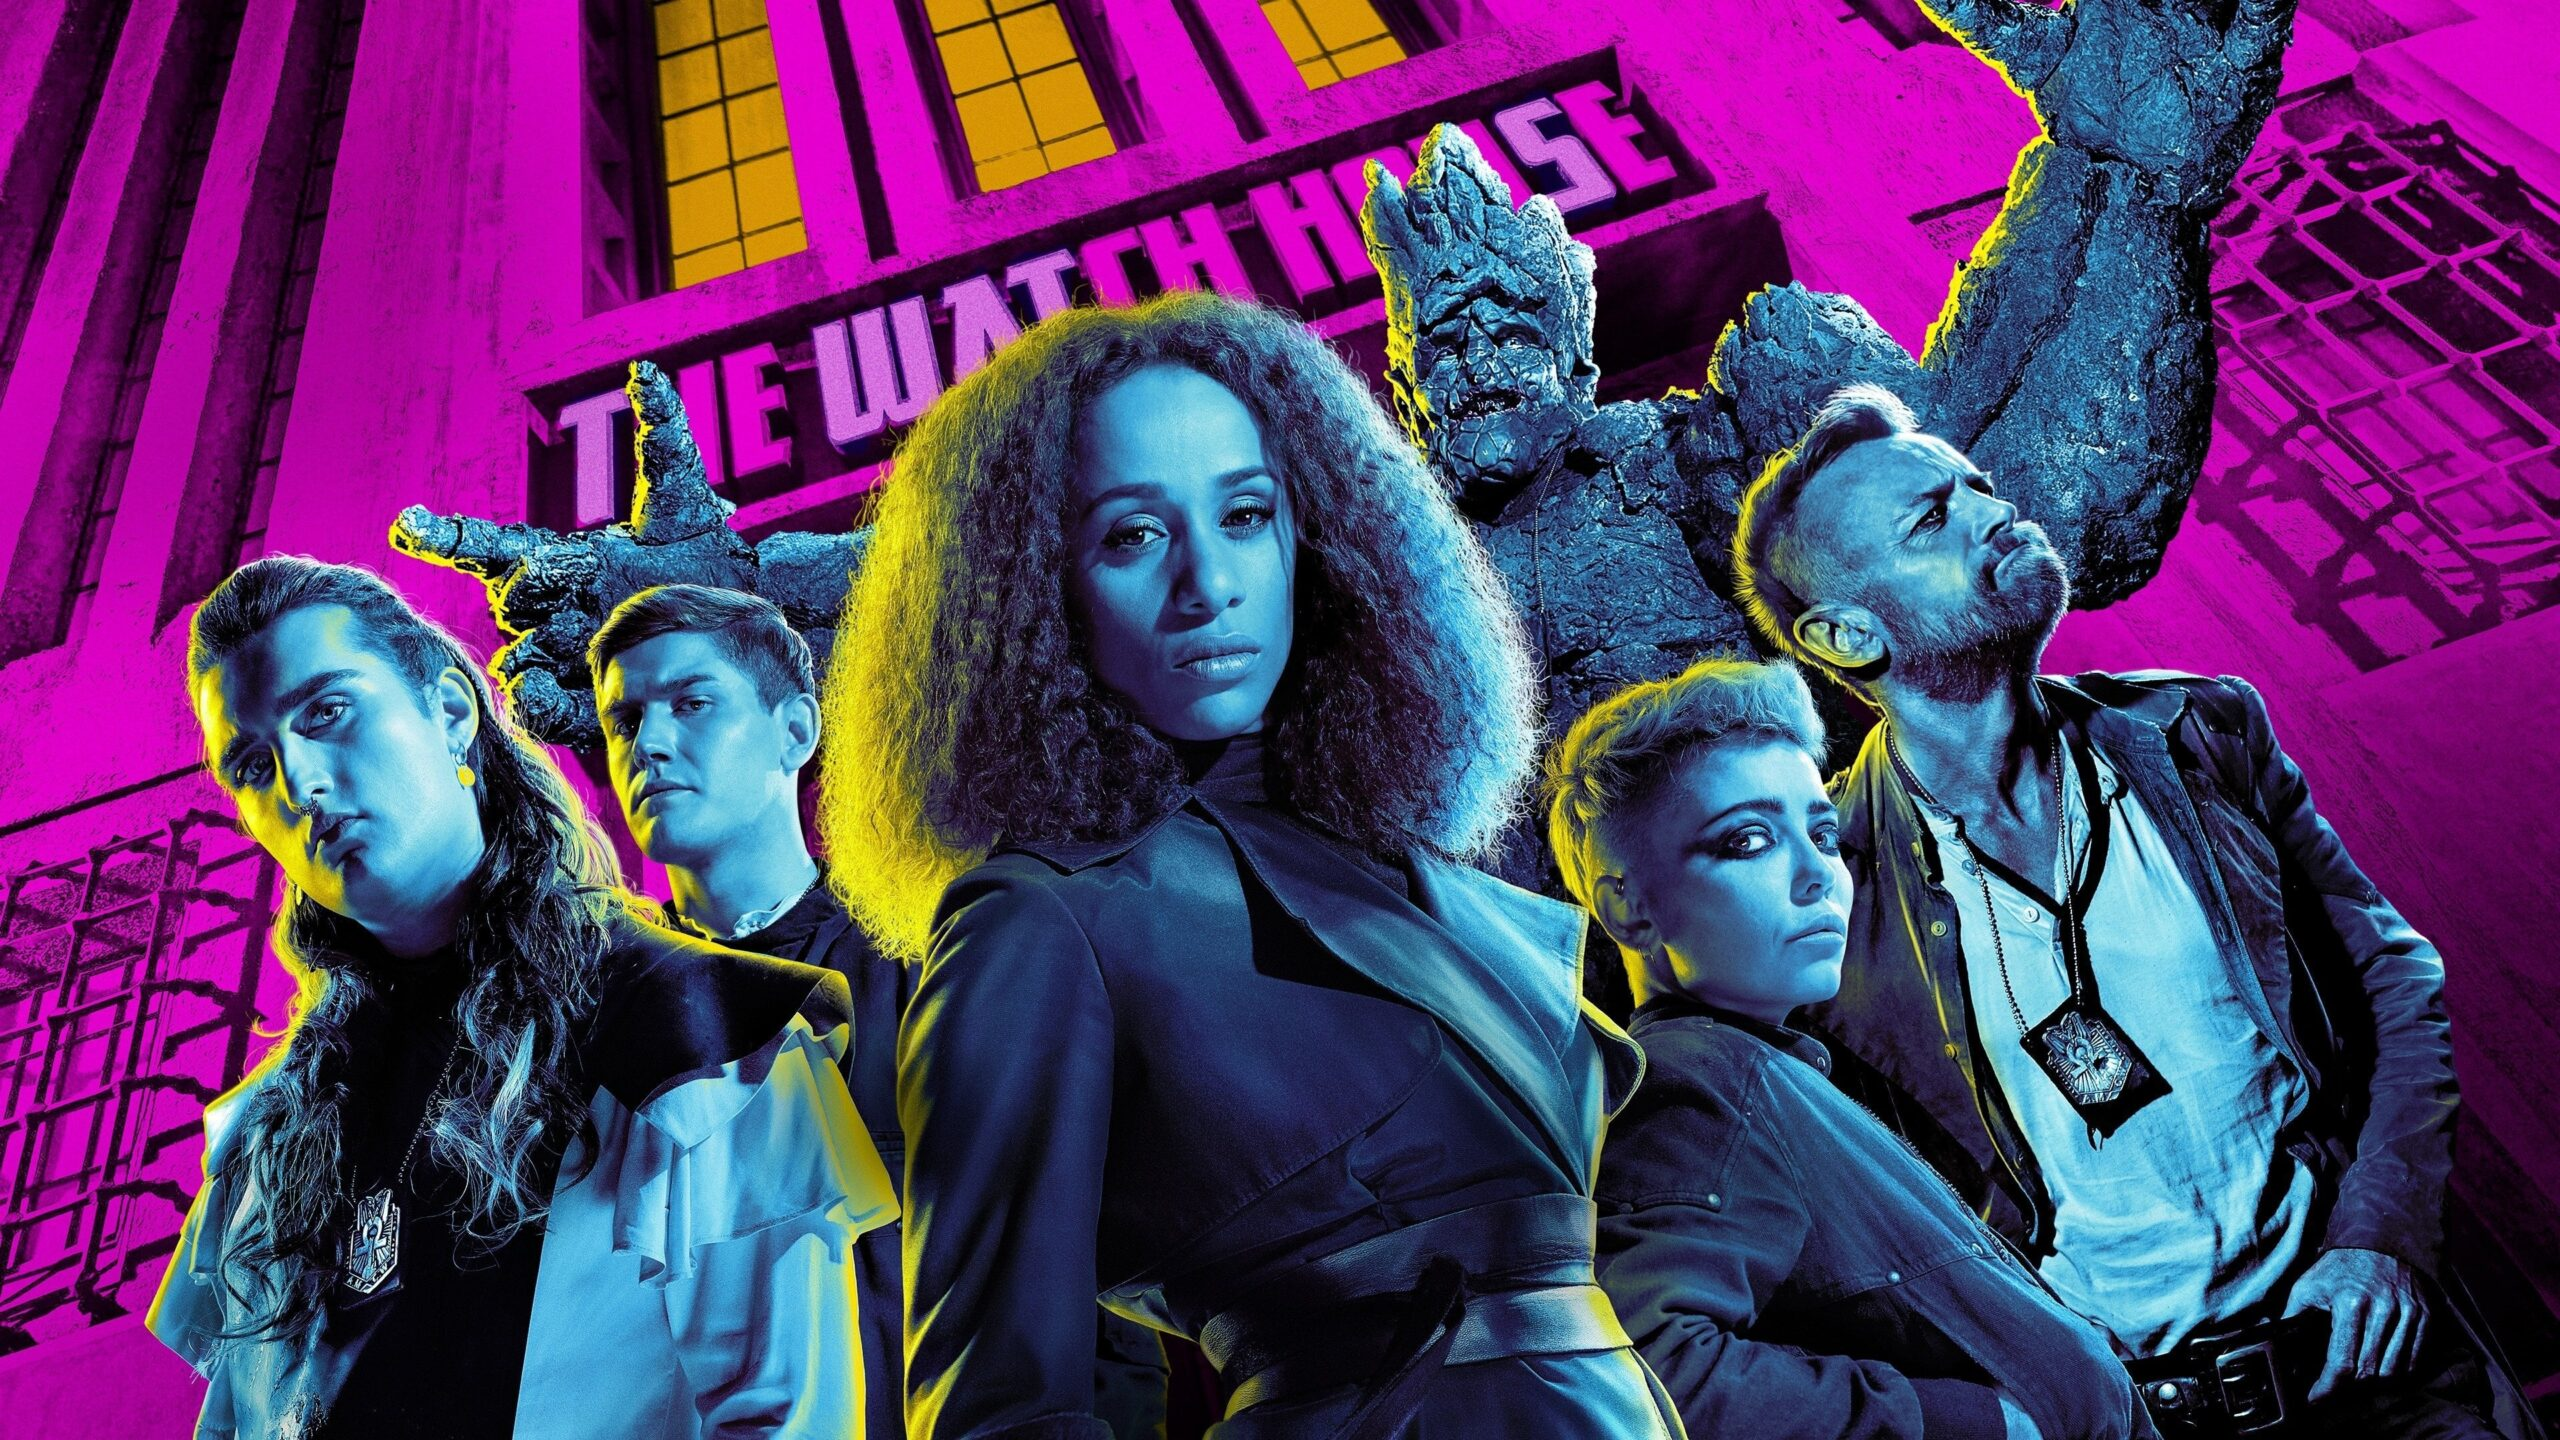 The Watch premieres on BBC 2